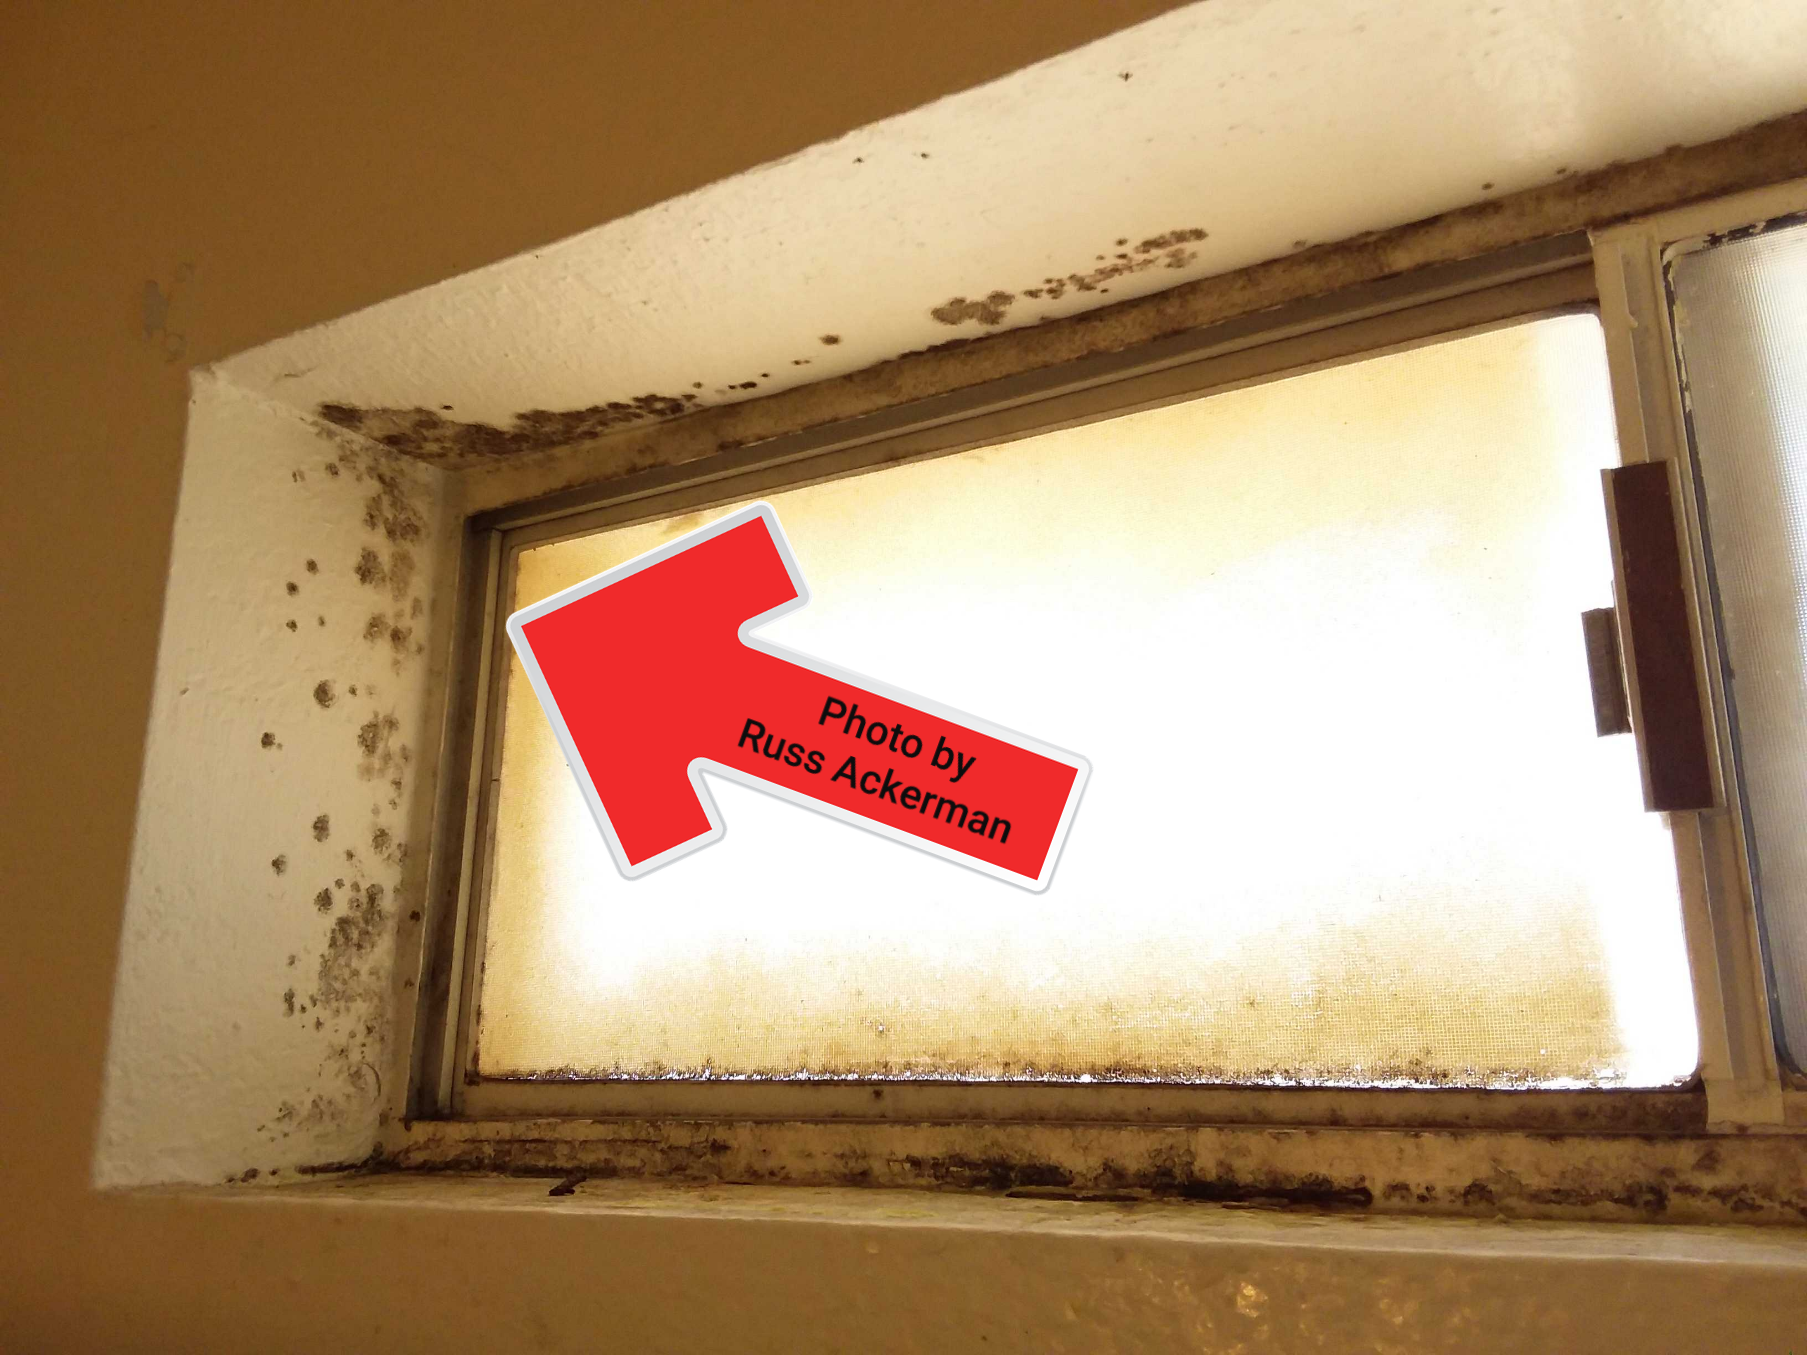 When a bathroom has no exhaust fan, the window should be open during showers. Now mold remediation is required.